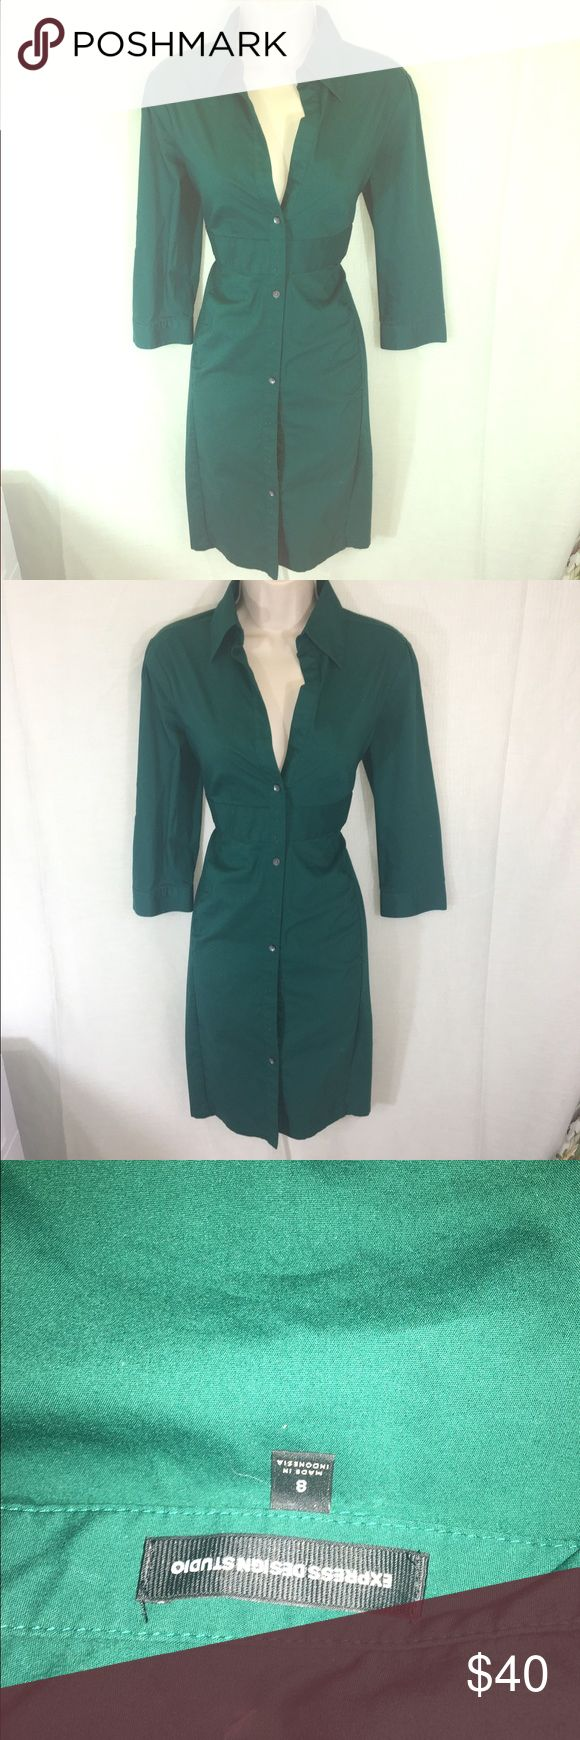 Express Green Shirt Dress-8 A beautiful shirt dress from Express in emerald green. The color is eye catching and the length and design make it a sleek and professional look. Perfect to pair with a belt and heels! Express Dresses